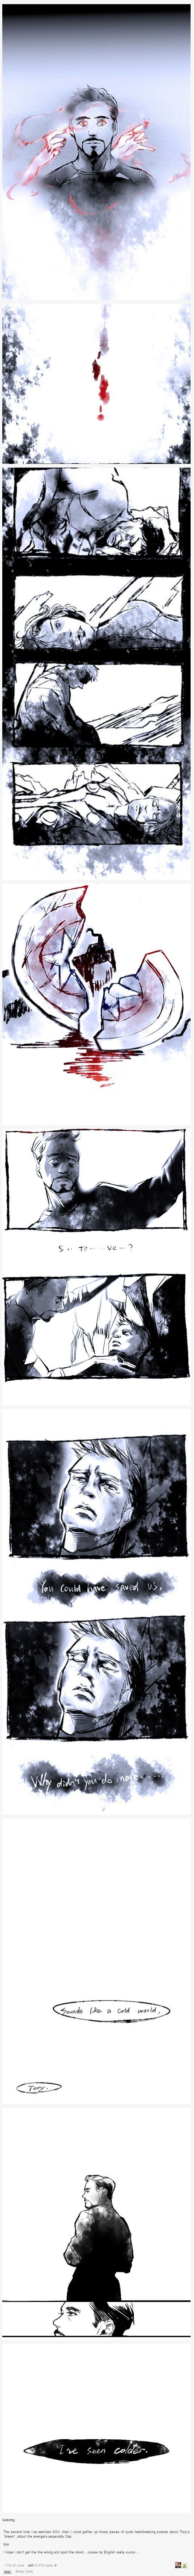 Whoa. This is heartbreaking, and beautifully done.